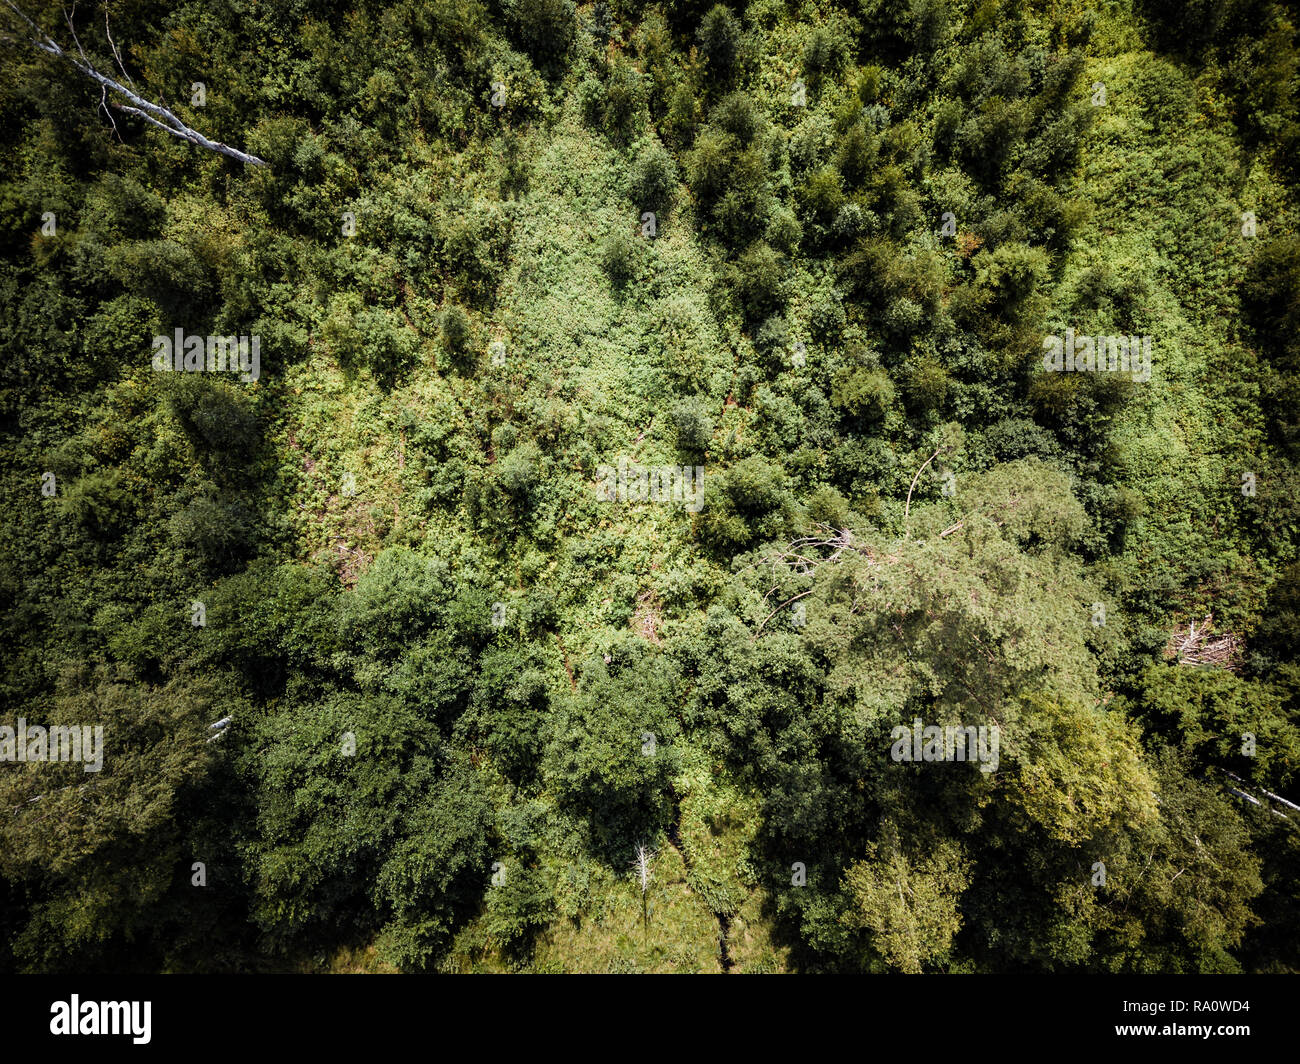 Aerial Drone Photo of the Countryside Forest, Top Down View in Sunny Summer Day - Background Material Stock Photo